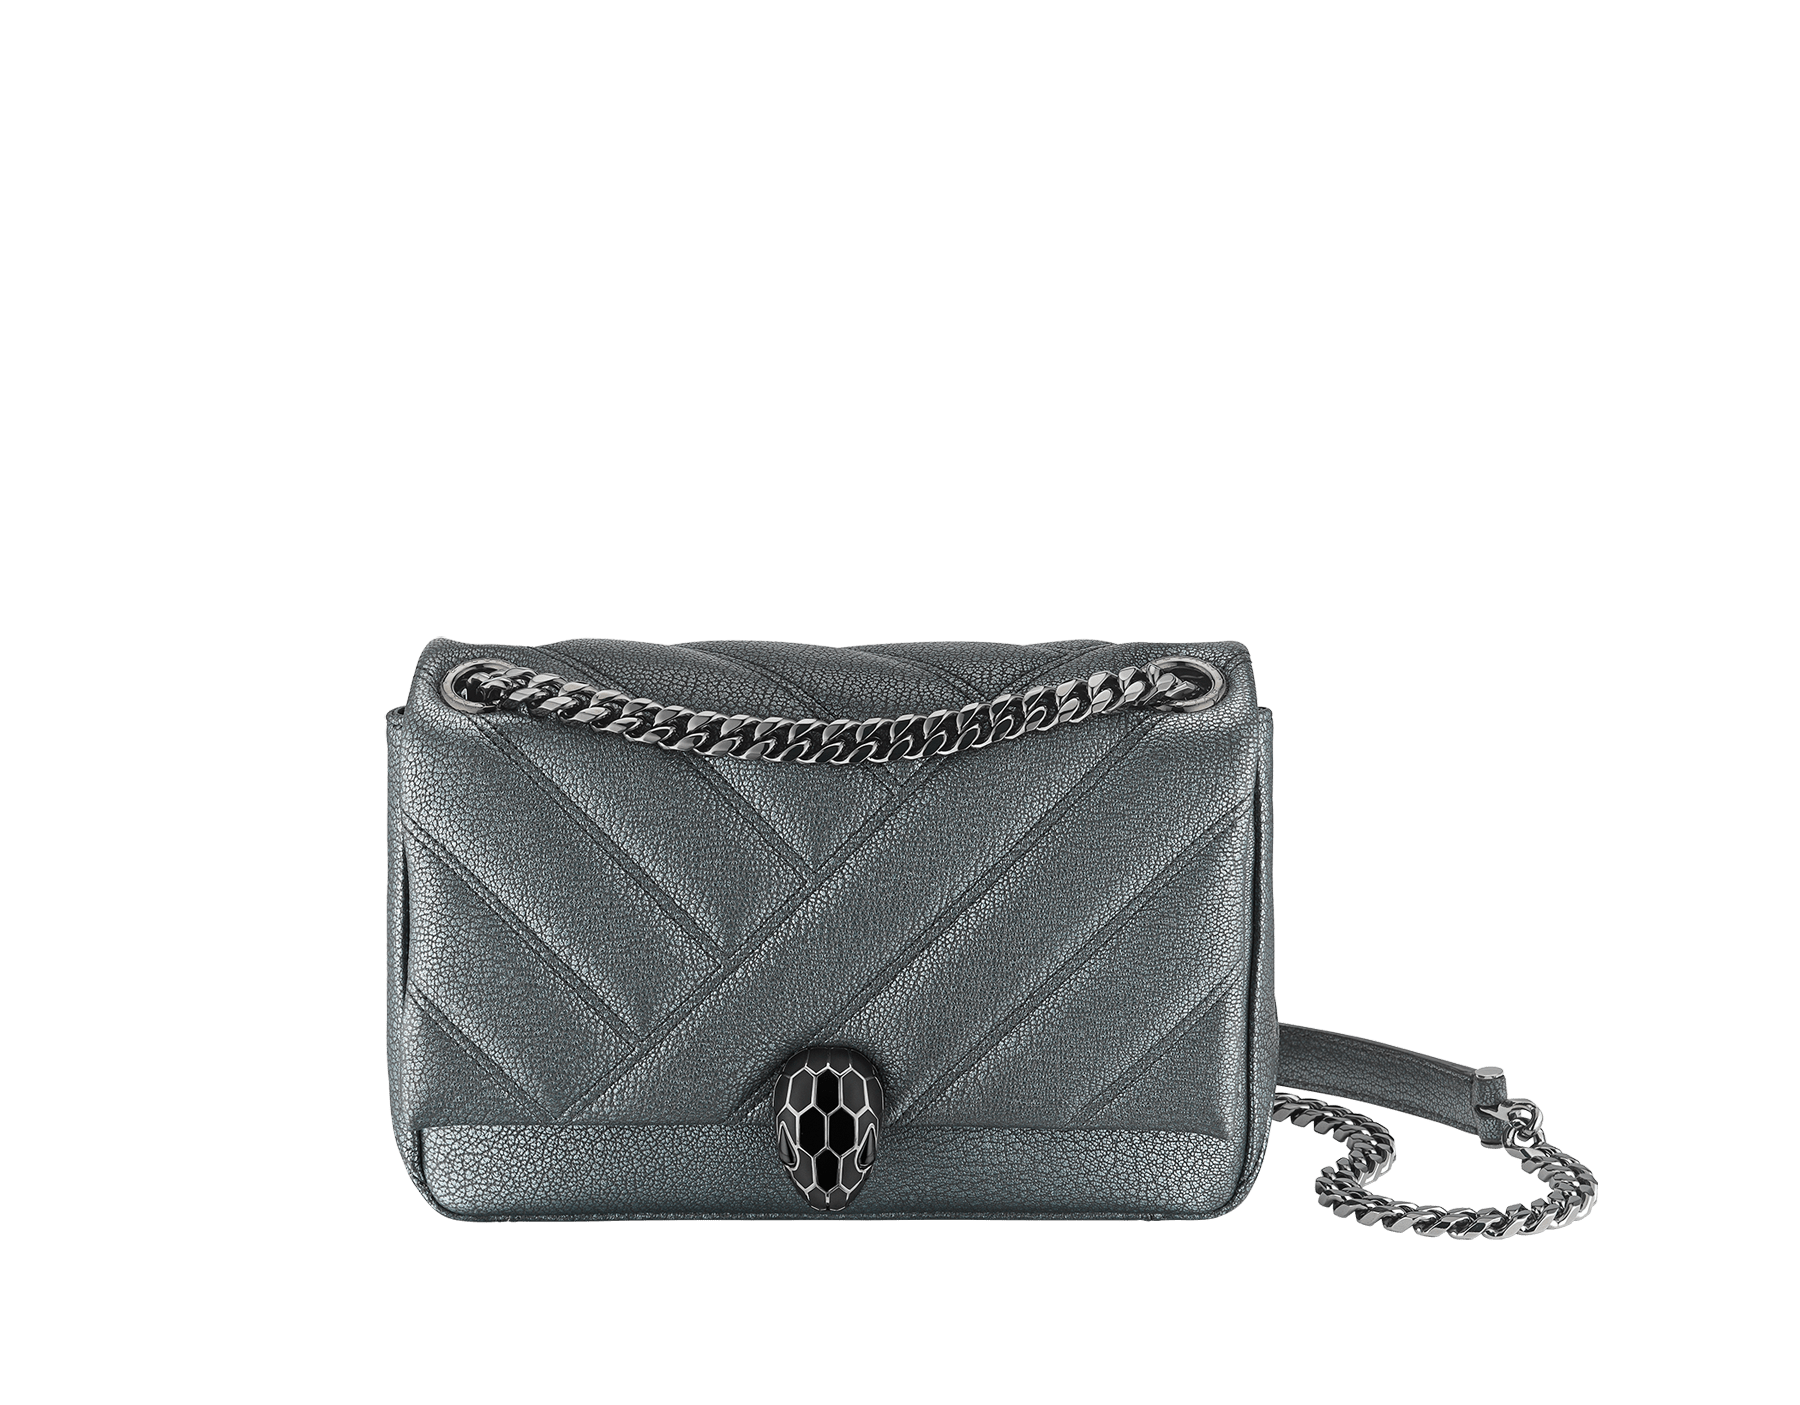 """Serpenti Cabochon"" shoulder bag in soft quilted charcoal diamond goatskin with a pearled effect and a graphic motif. Brass dark ruthenium plated tempting snakehead closure in matte and shiny black enamel and black onyx eyes. 290274 image 1"